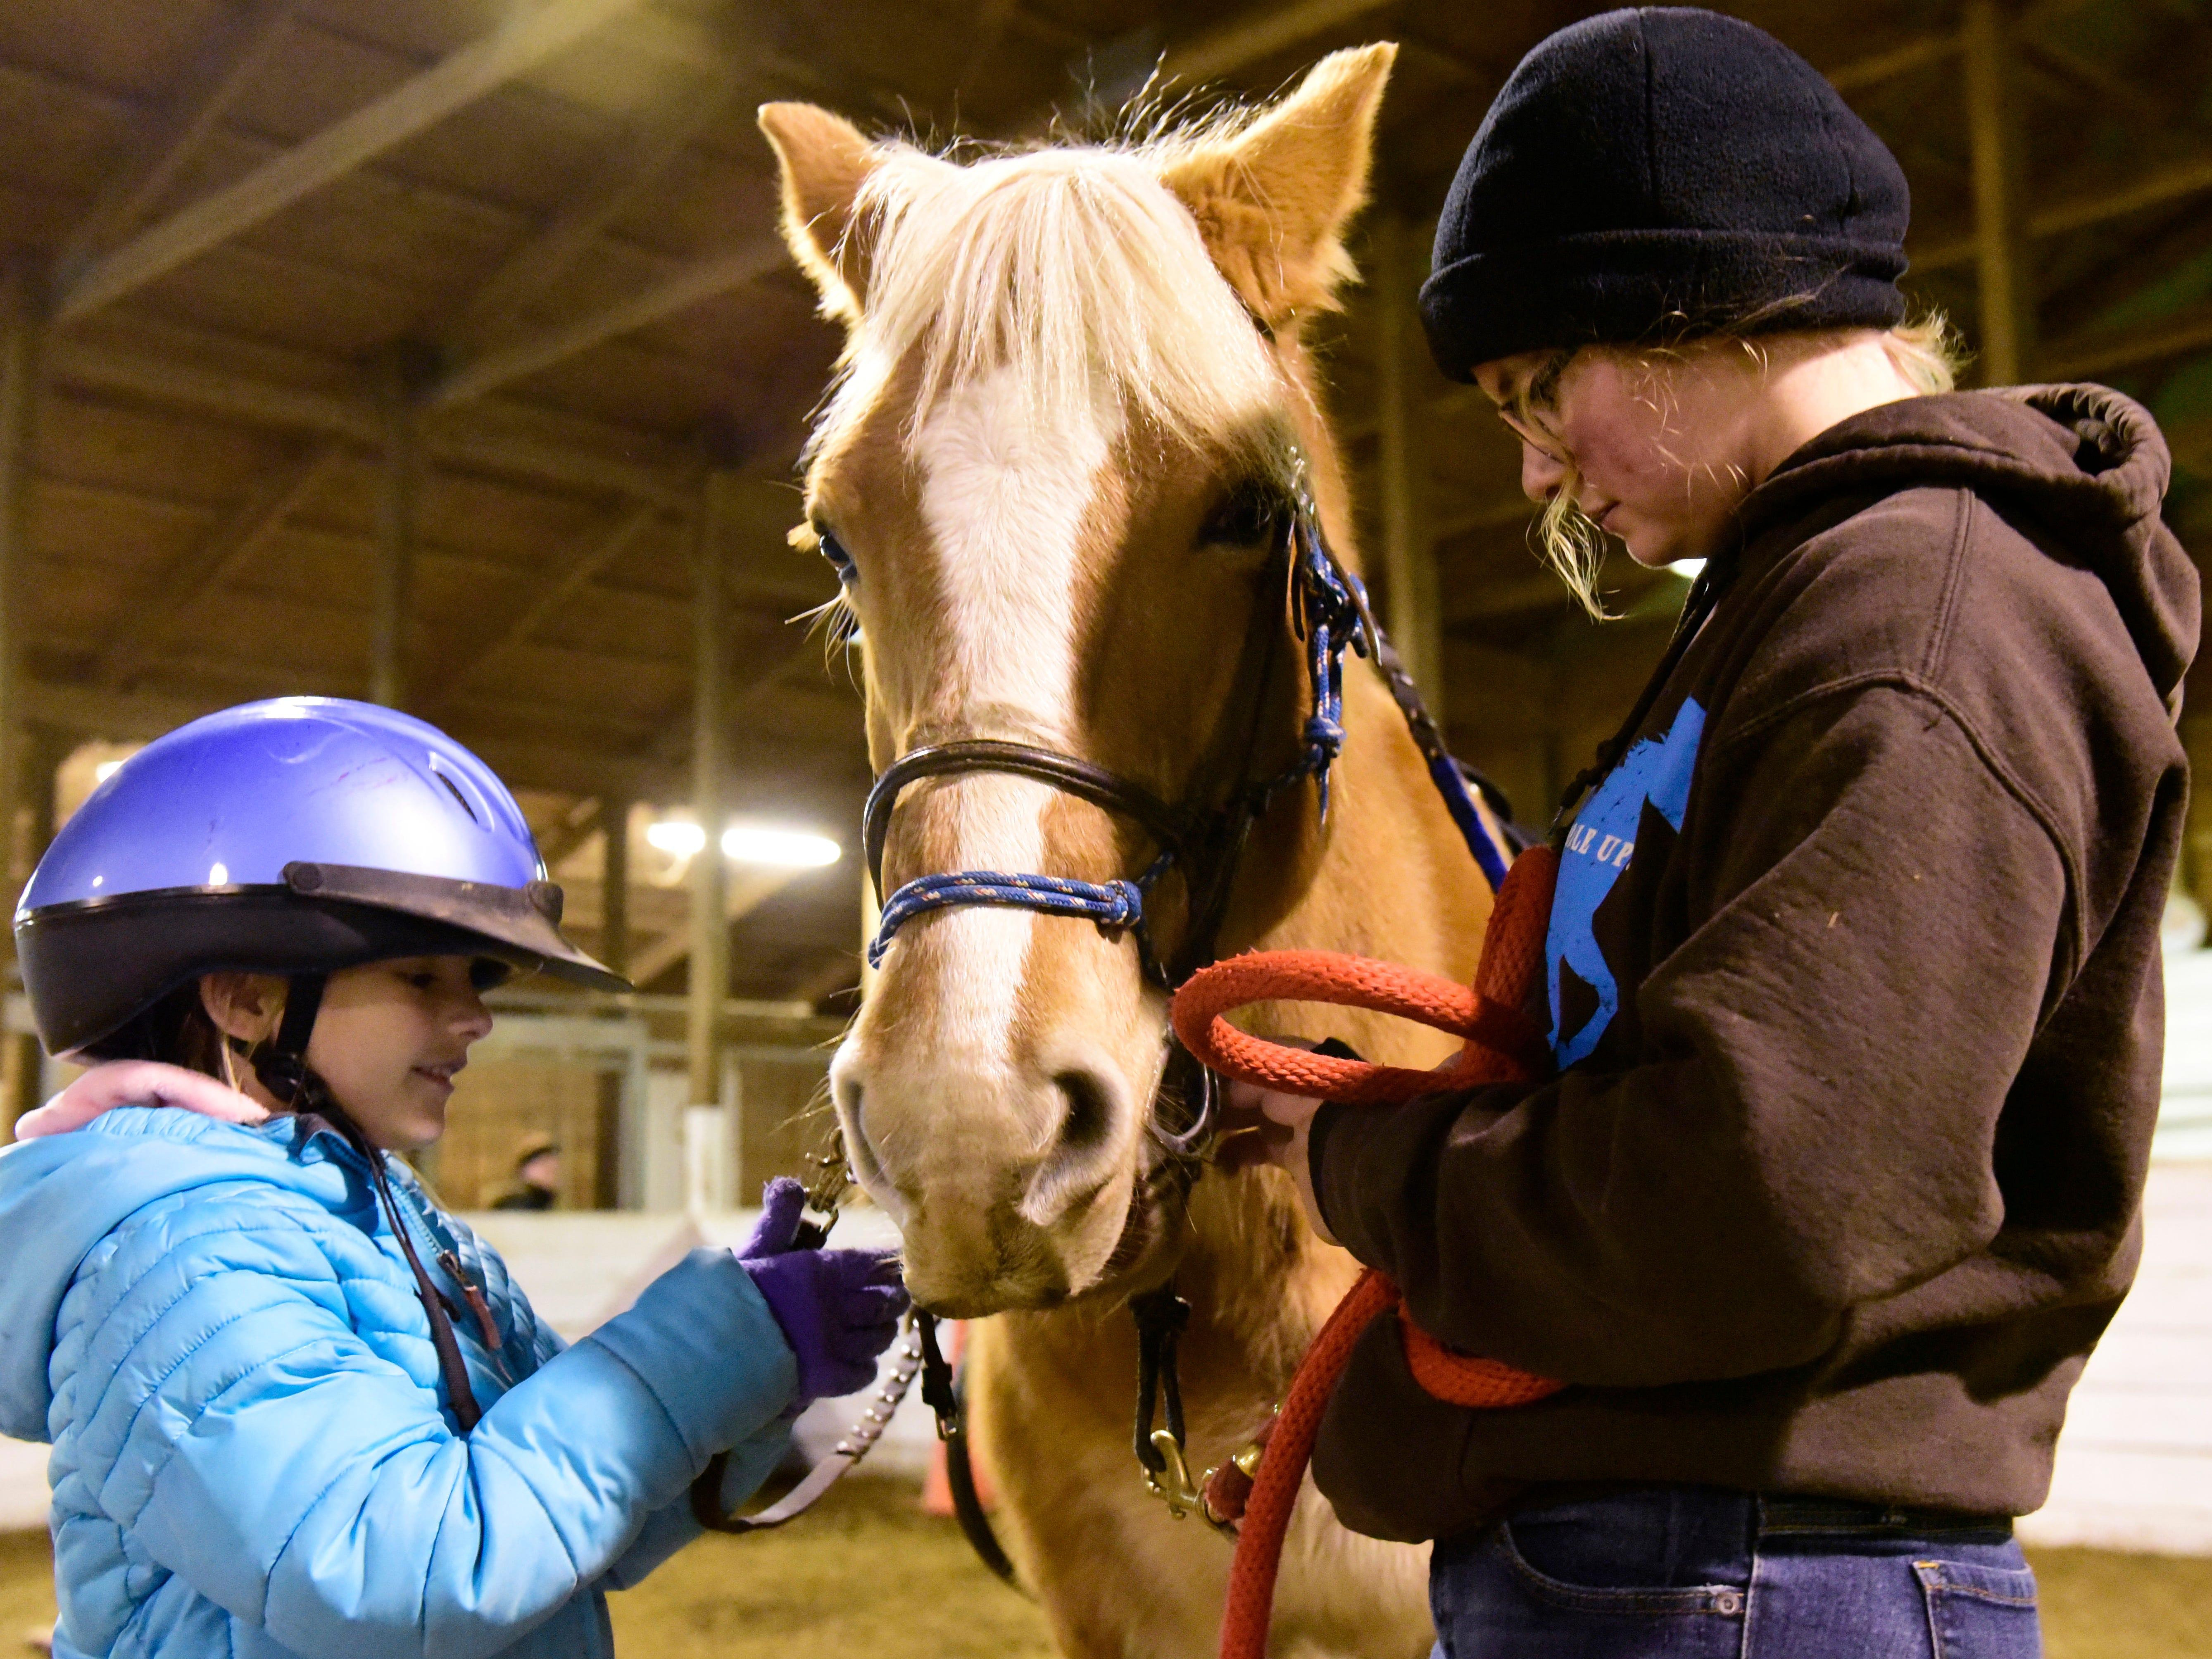 Aubrey Messa, 8, of Oak Harbor cares for her lesson horse, Gracie, a 13 year old Haflinger mare, with help from volunteer leader Ava Van Ness.